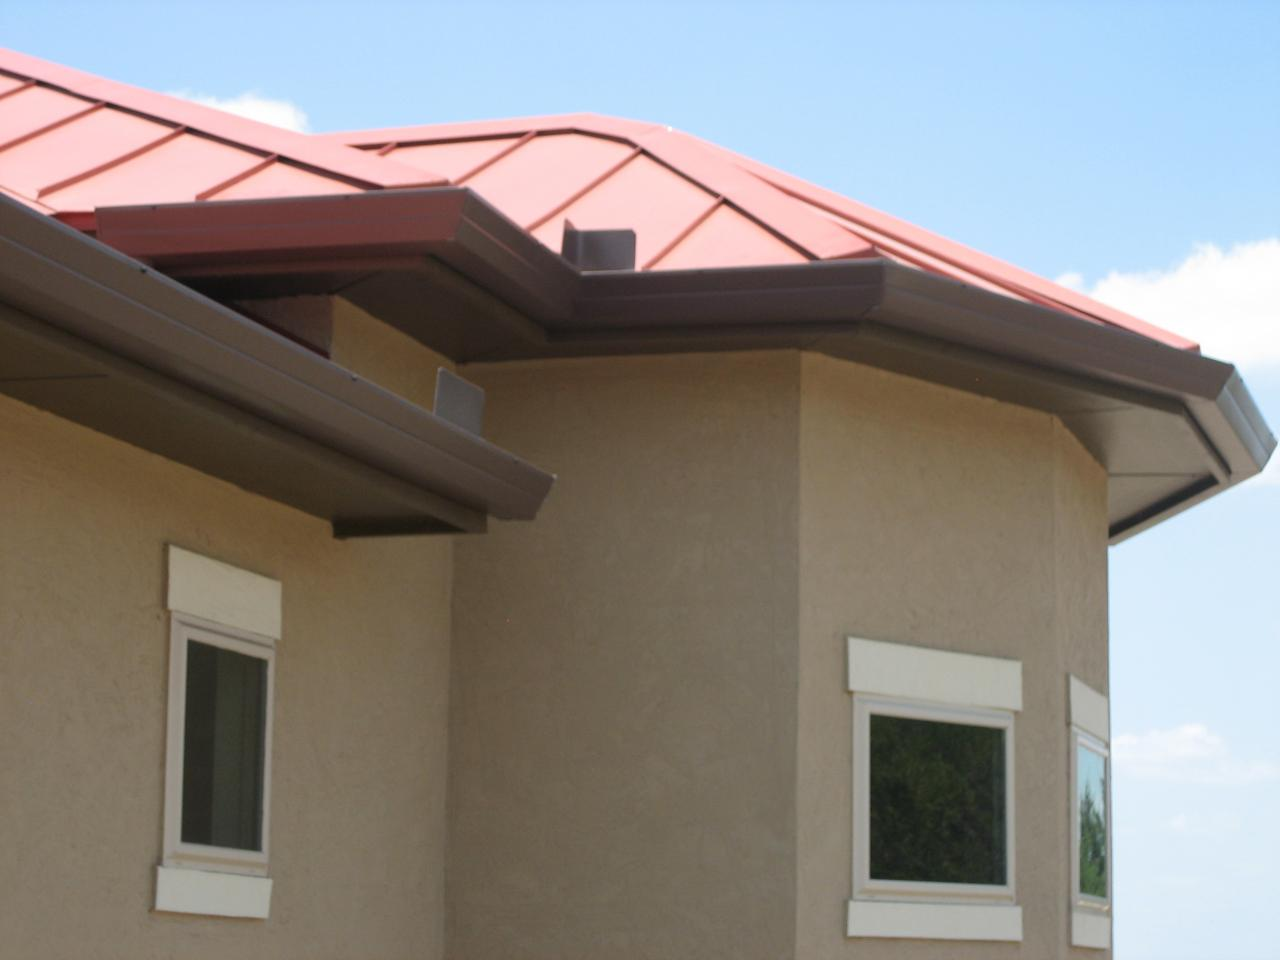 High quality gutters